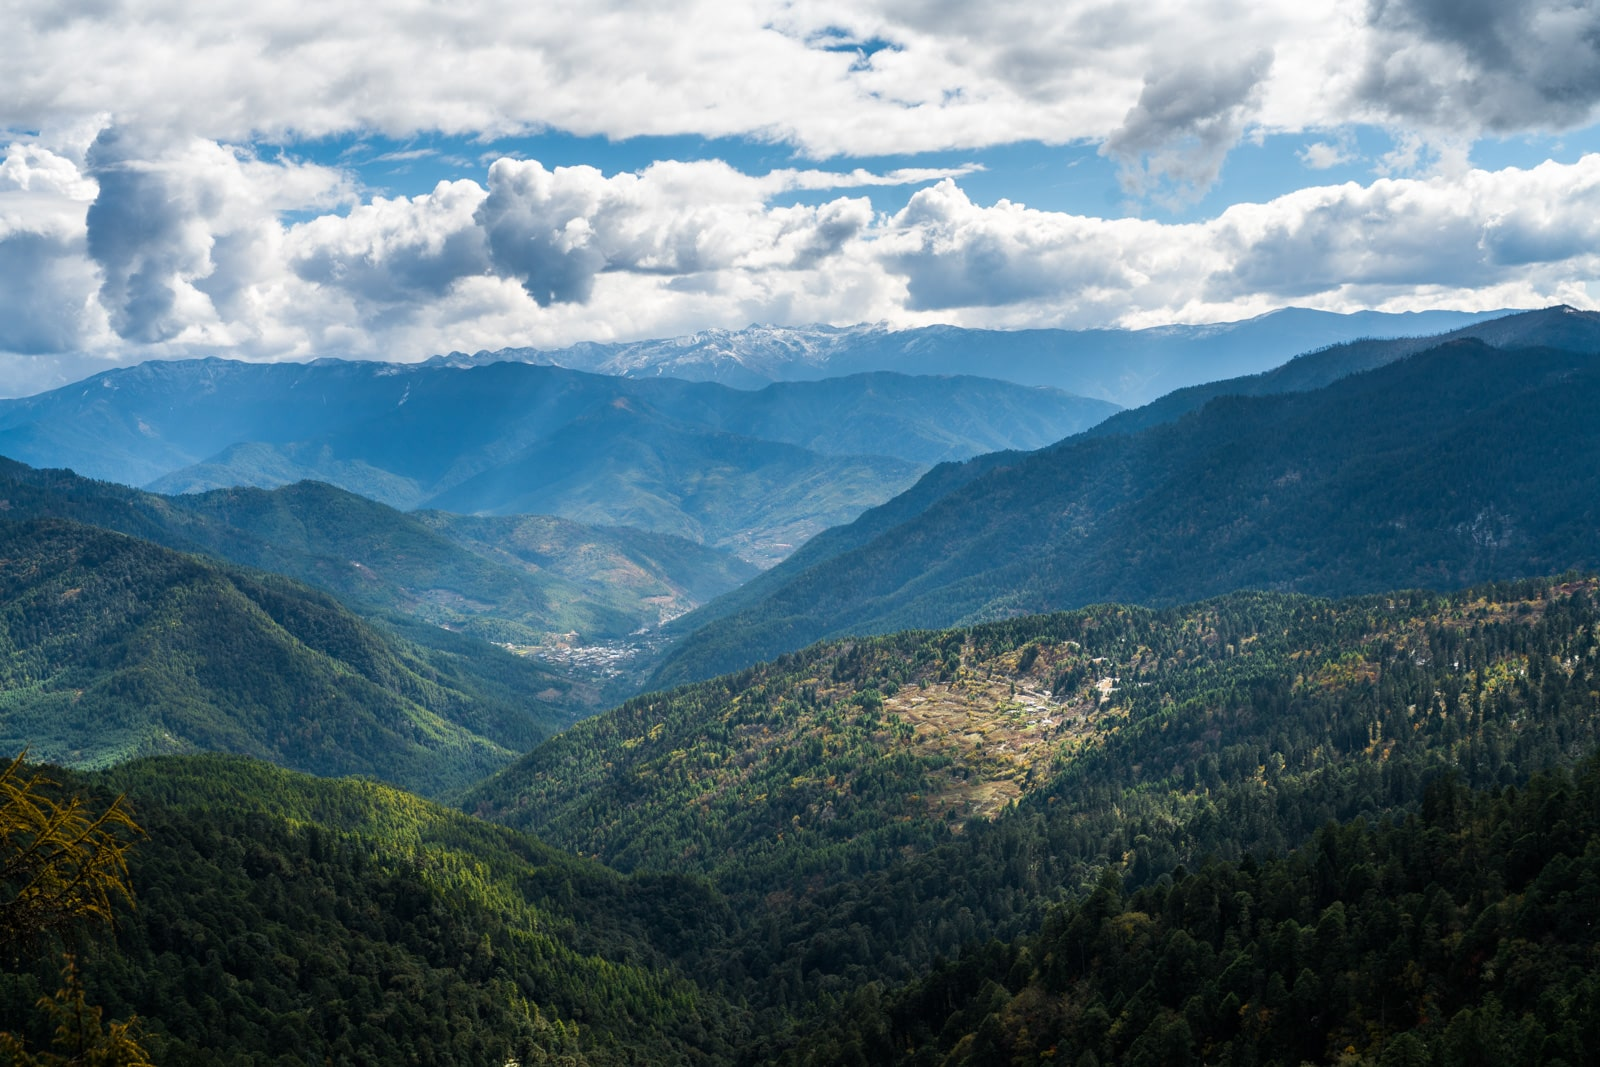 Stunning photos of Bhutan - Clouds over valley along the Druk Path between Thimphu and Paro - Lost With Purpose travel blog